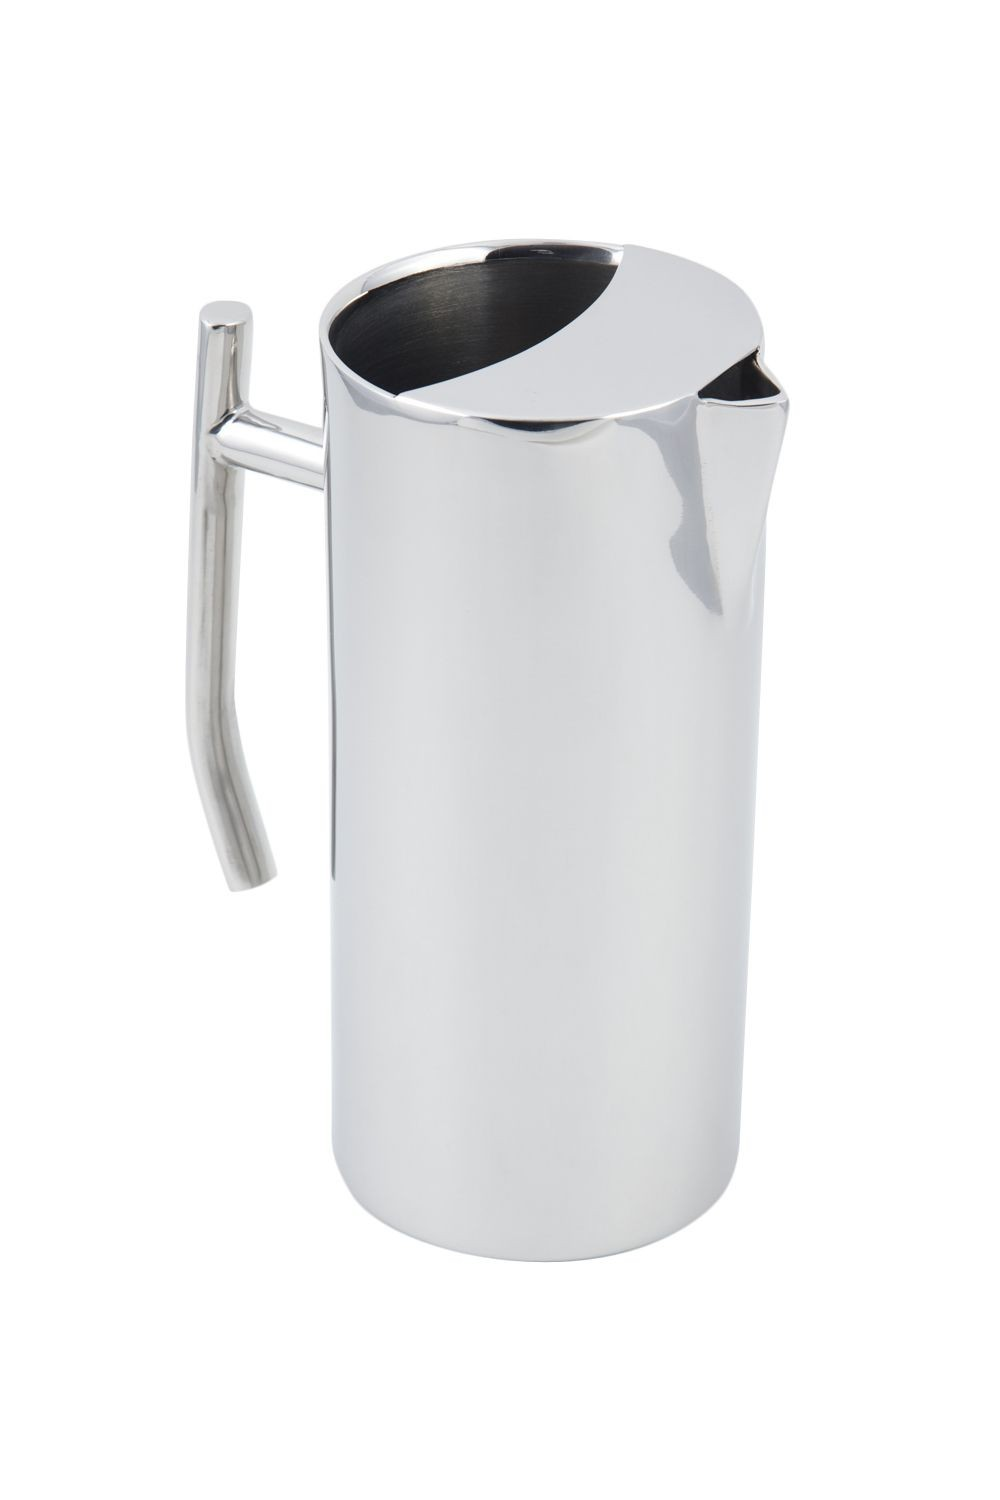 Bon Chef 61314 Empire Collection Stainless Steel Water Pitcher with Ice Guard, 64 oz.